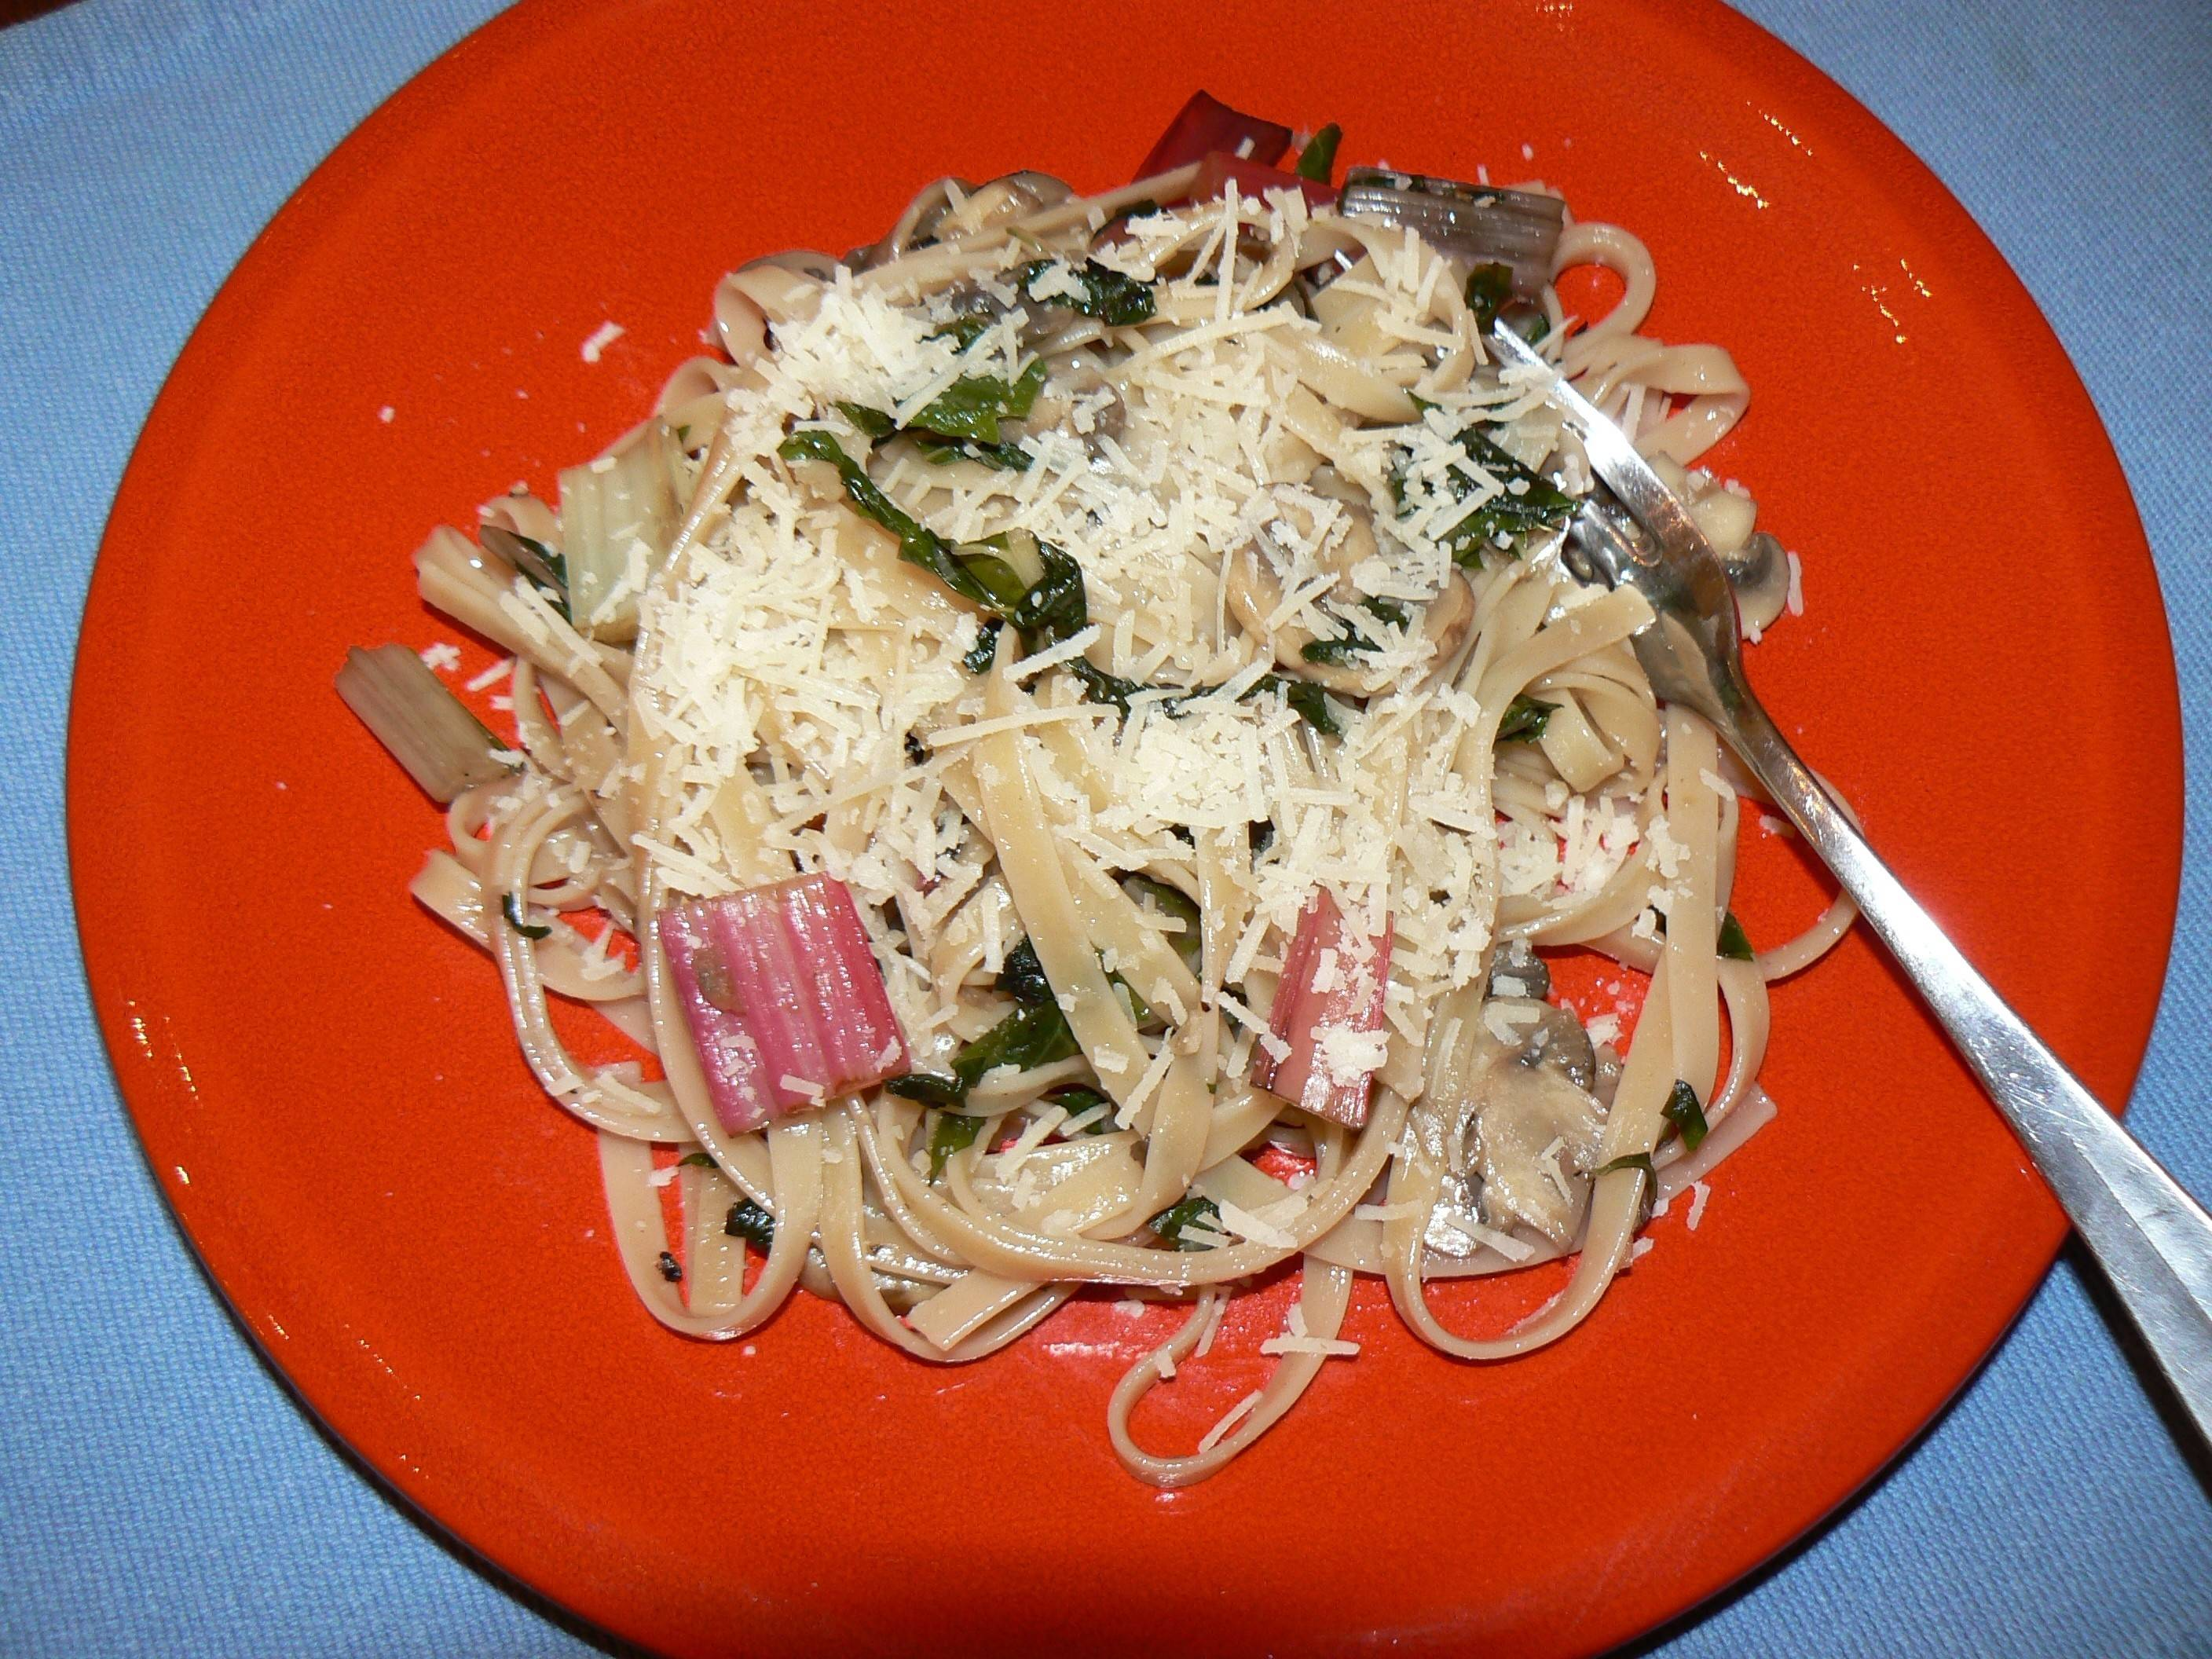 When your garden or marketbasket overflows with colorful Swiss chard, try adding it to cheesy fettuccine.